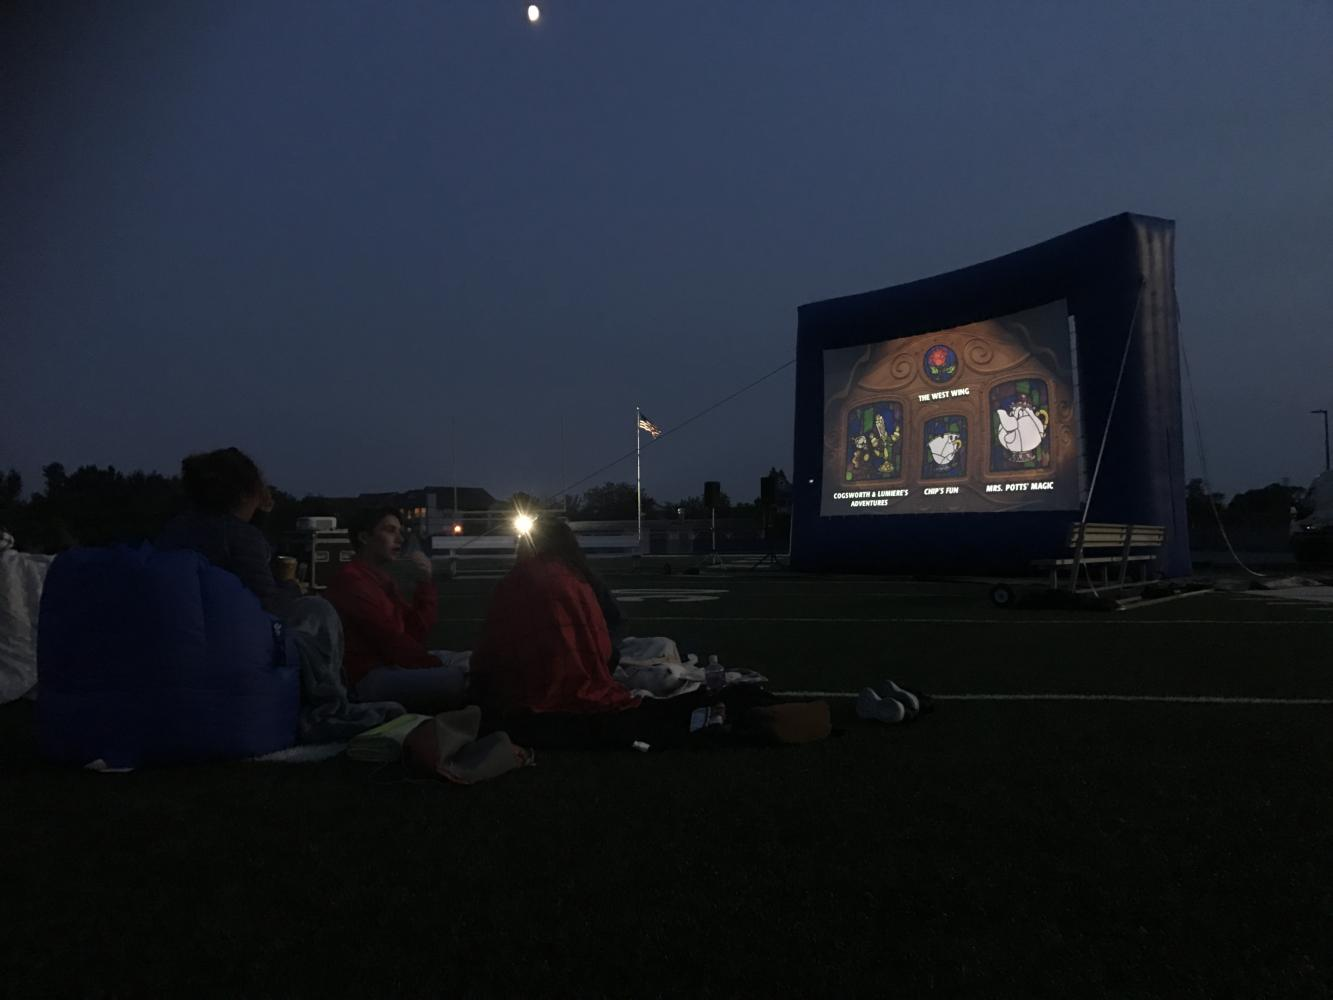 Onlookers watch as Monsters Inc plays on the big screen. Student Council held a showing of the movie on the football field for the annual movie night.